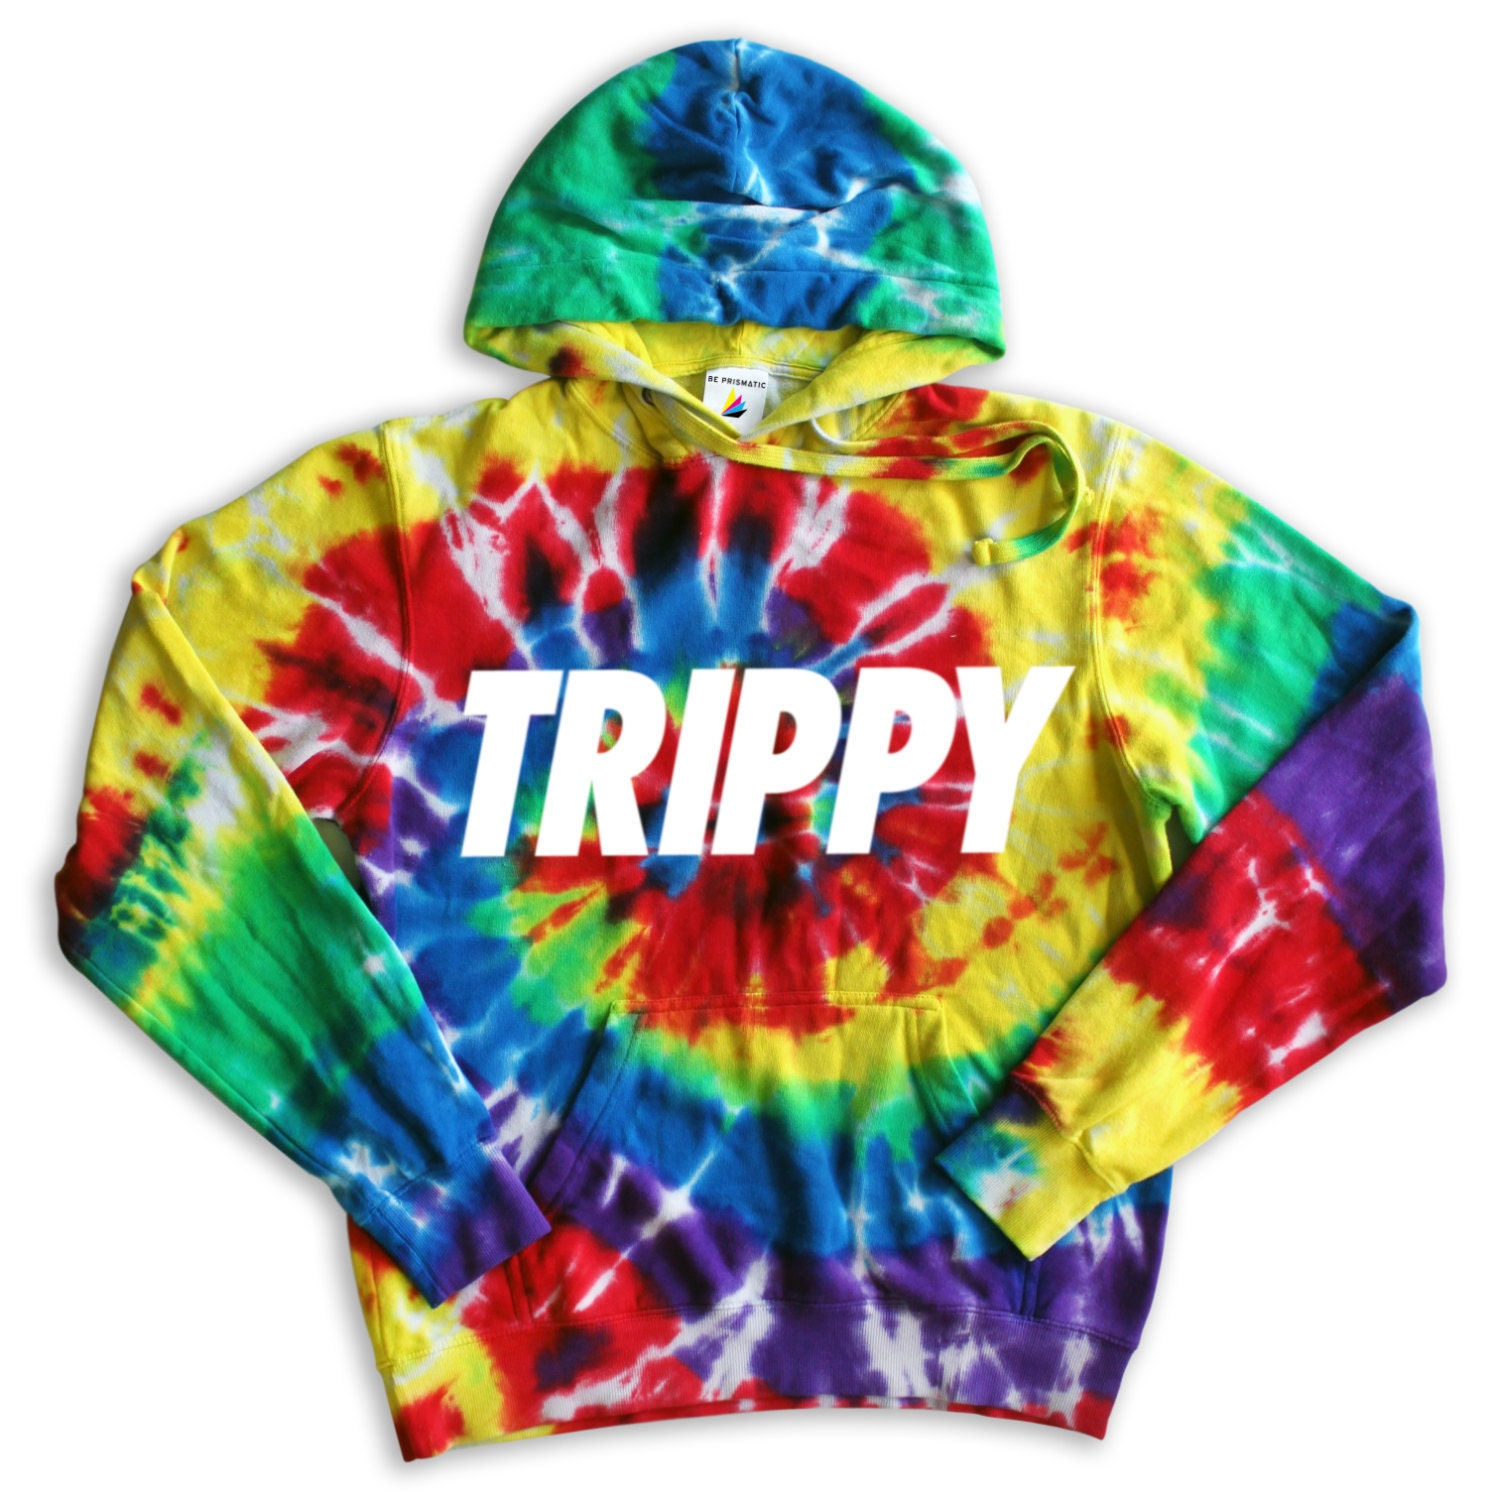 trippy tie dye hoodie tumblr inspired hipster music festival. Black Bedroom Furniture Sets. Home Design Ideas